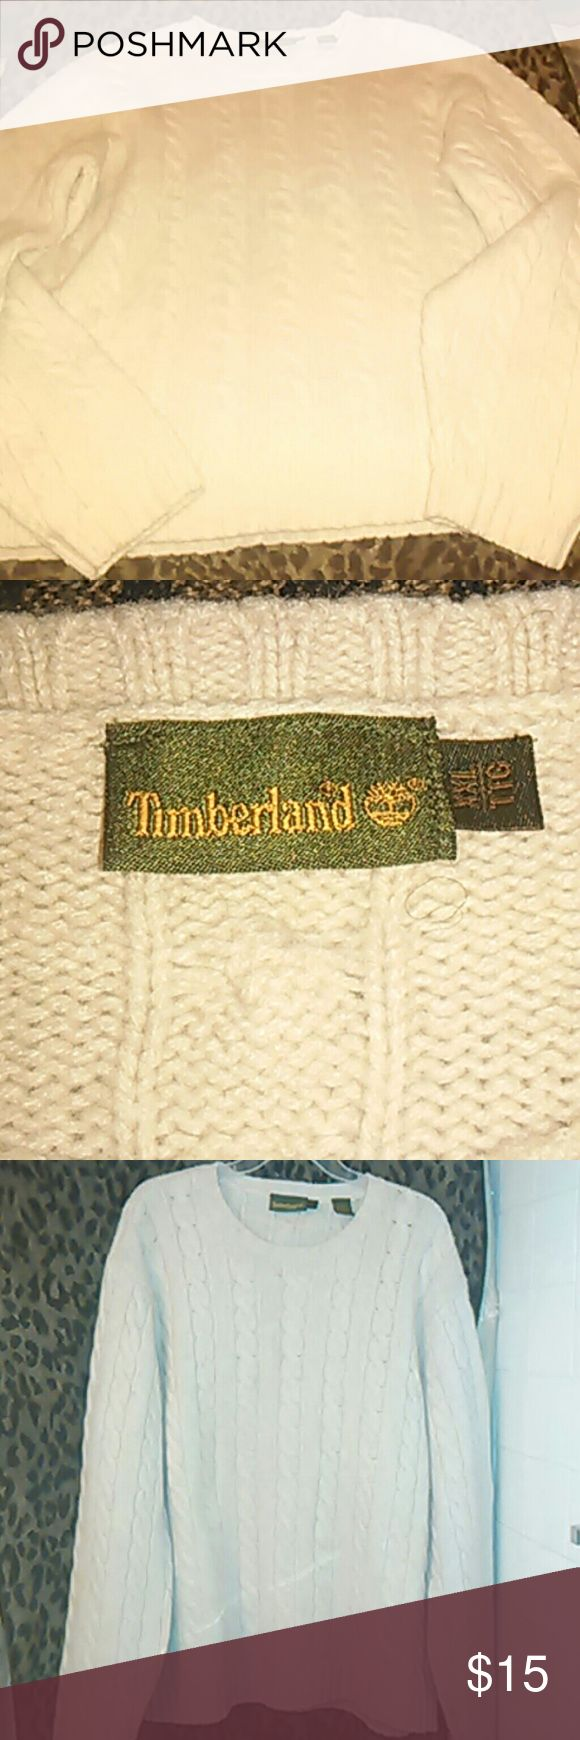 Sweater Trendy  Timberland Lambs Wool Crew Neck Sweater Good Condition Sweaters Crewneck